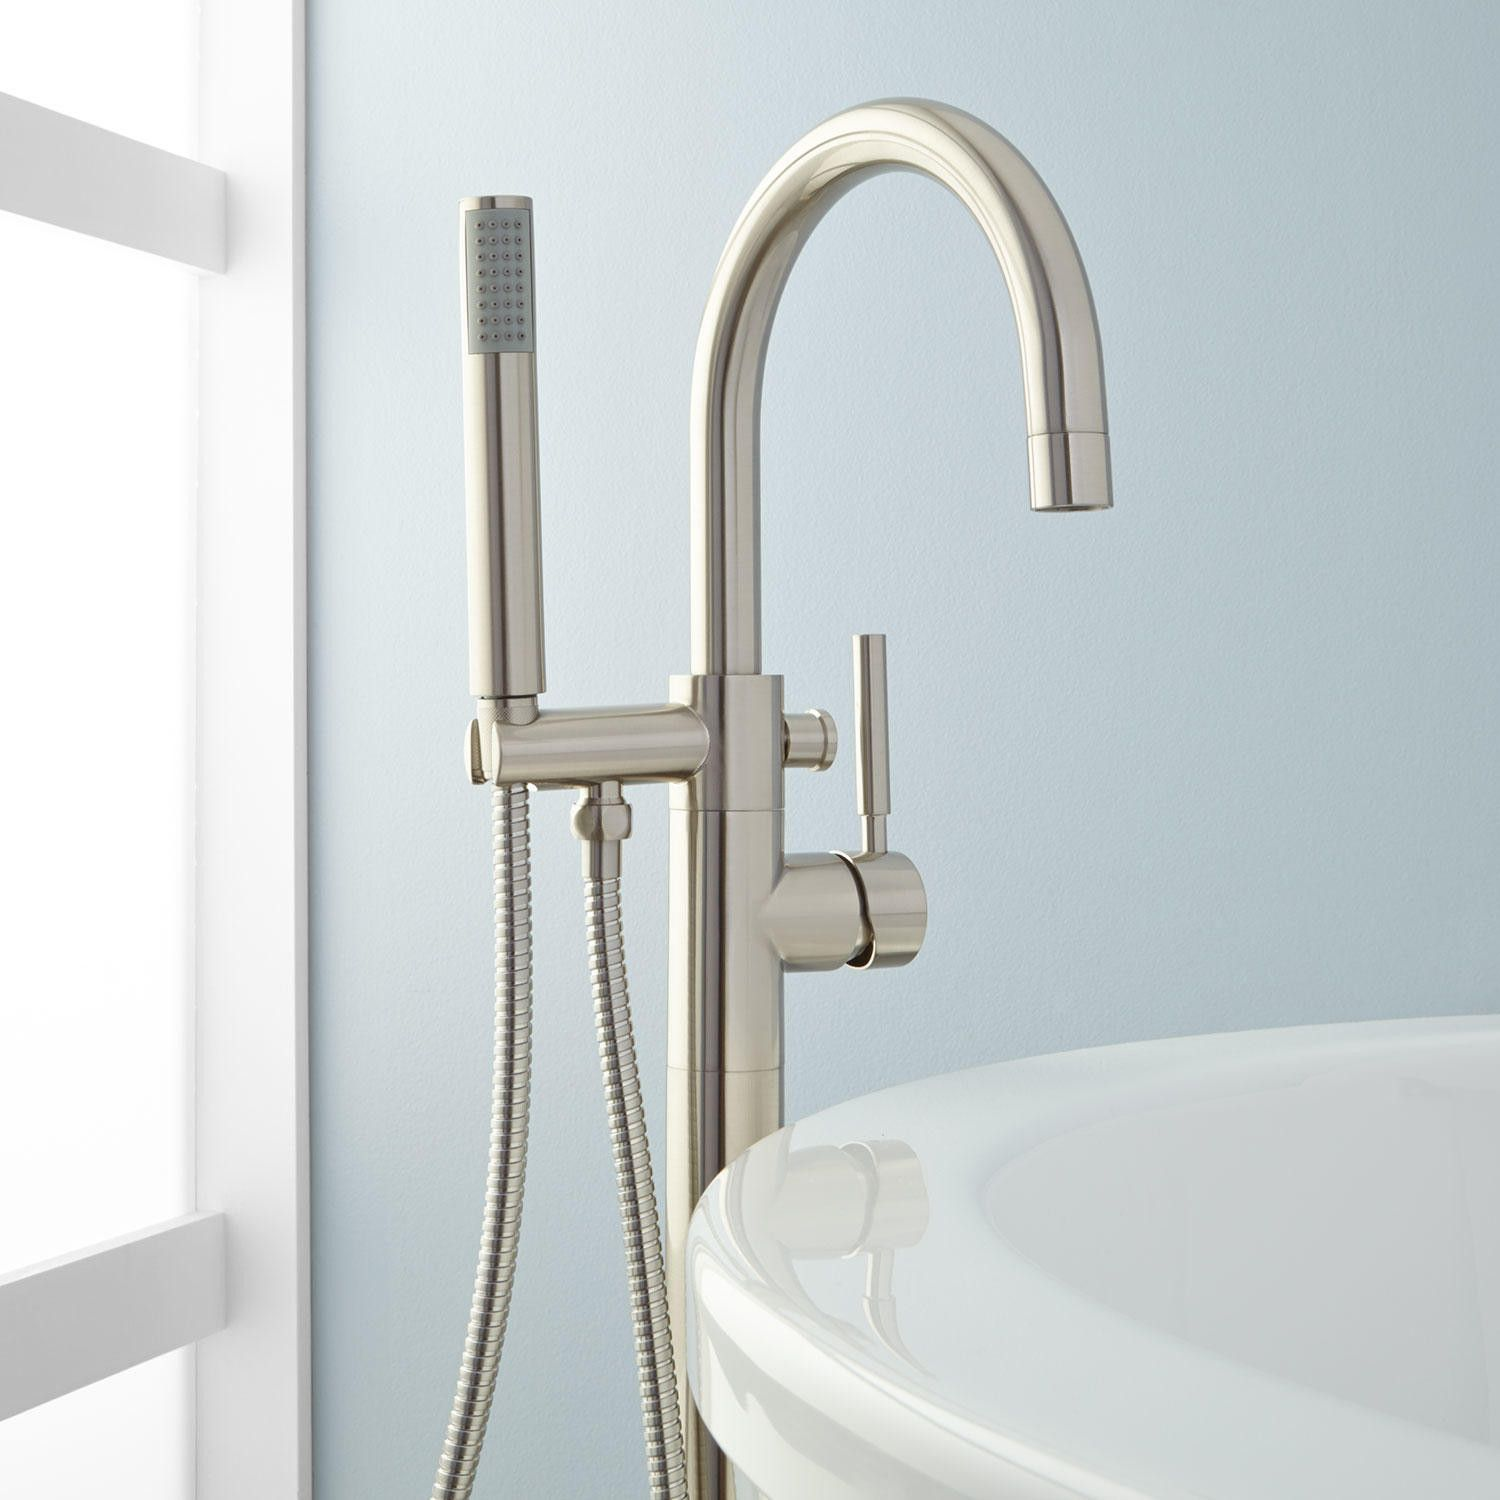 Simoni Freestanding Tub Faucet And Hand Shower In Chrome